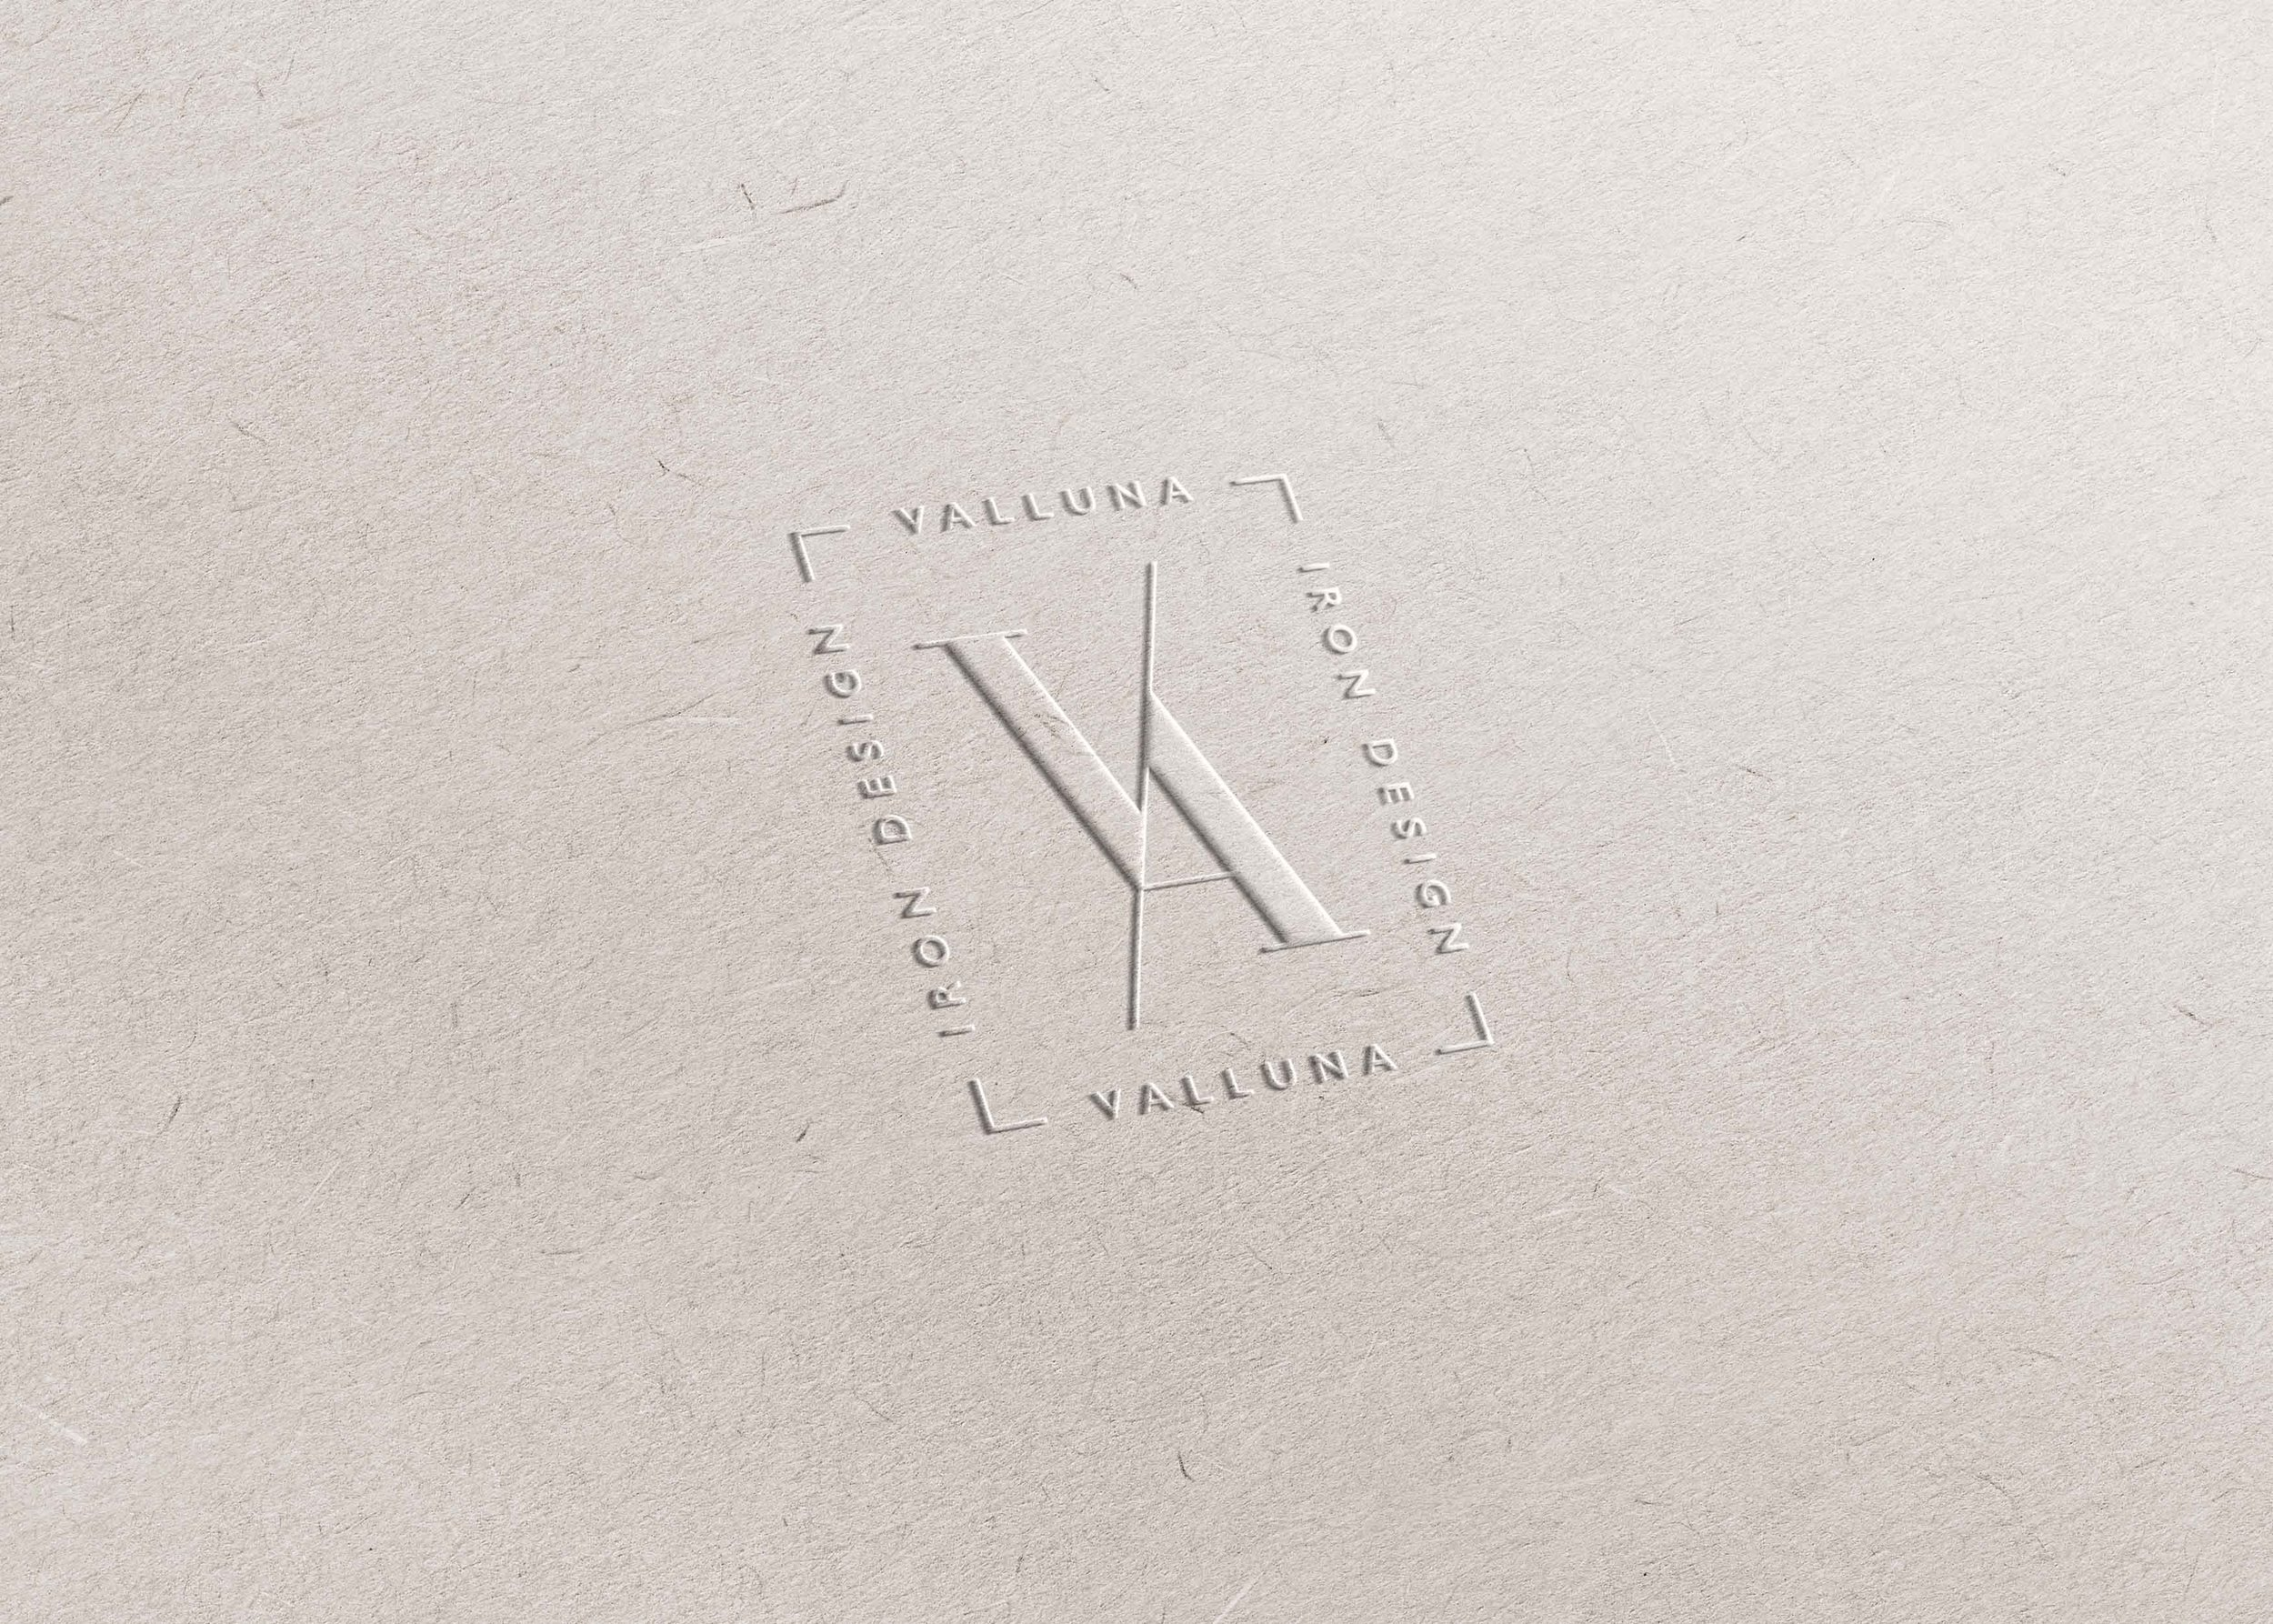 Valluna_stamp.jpg